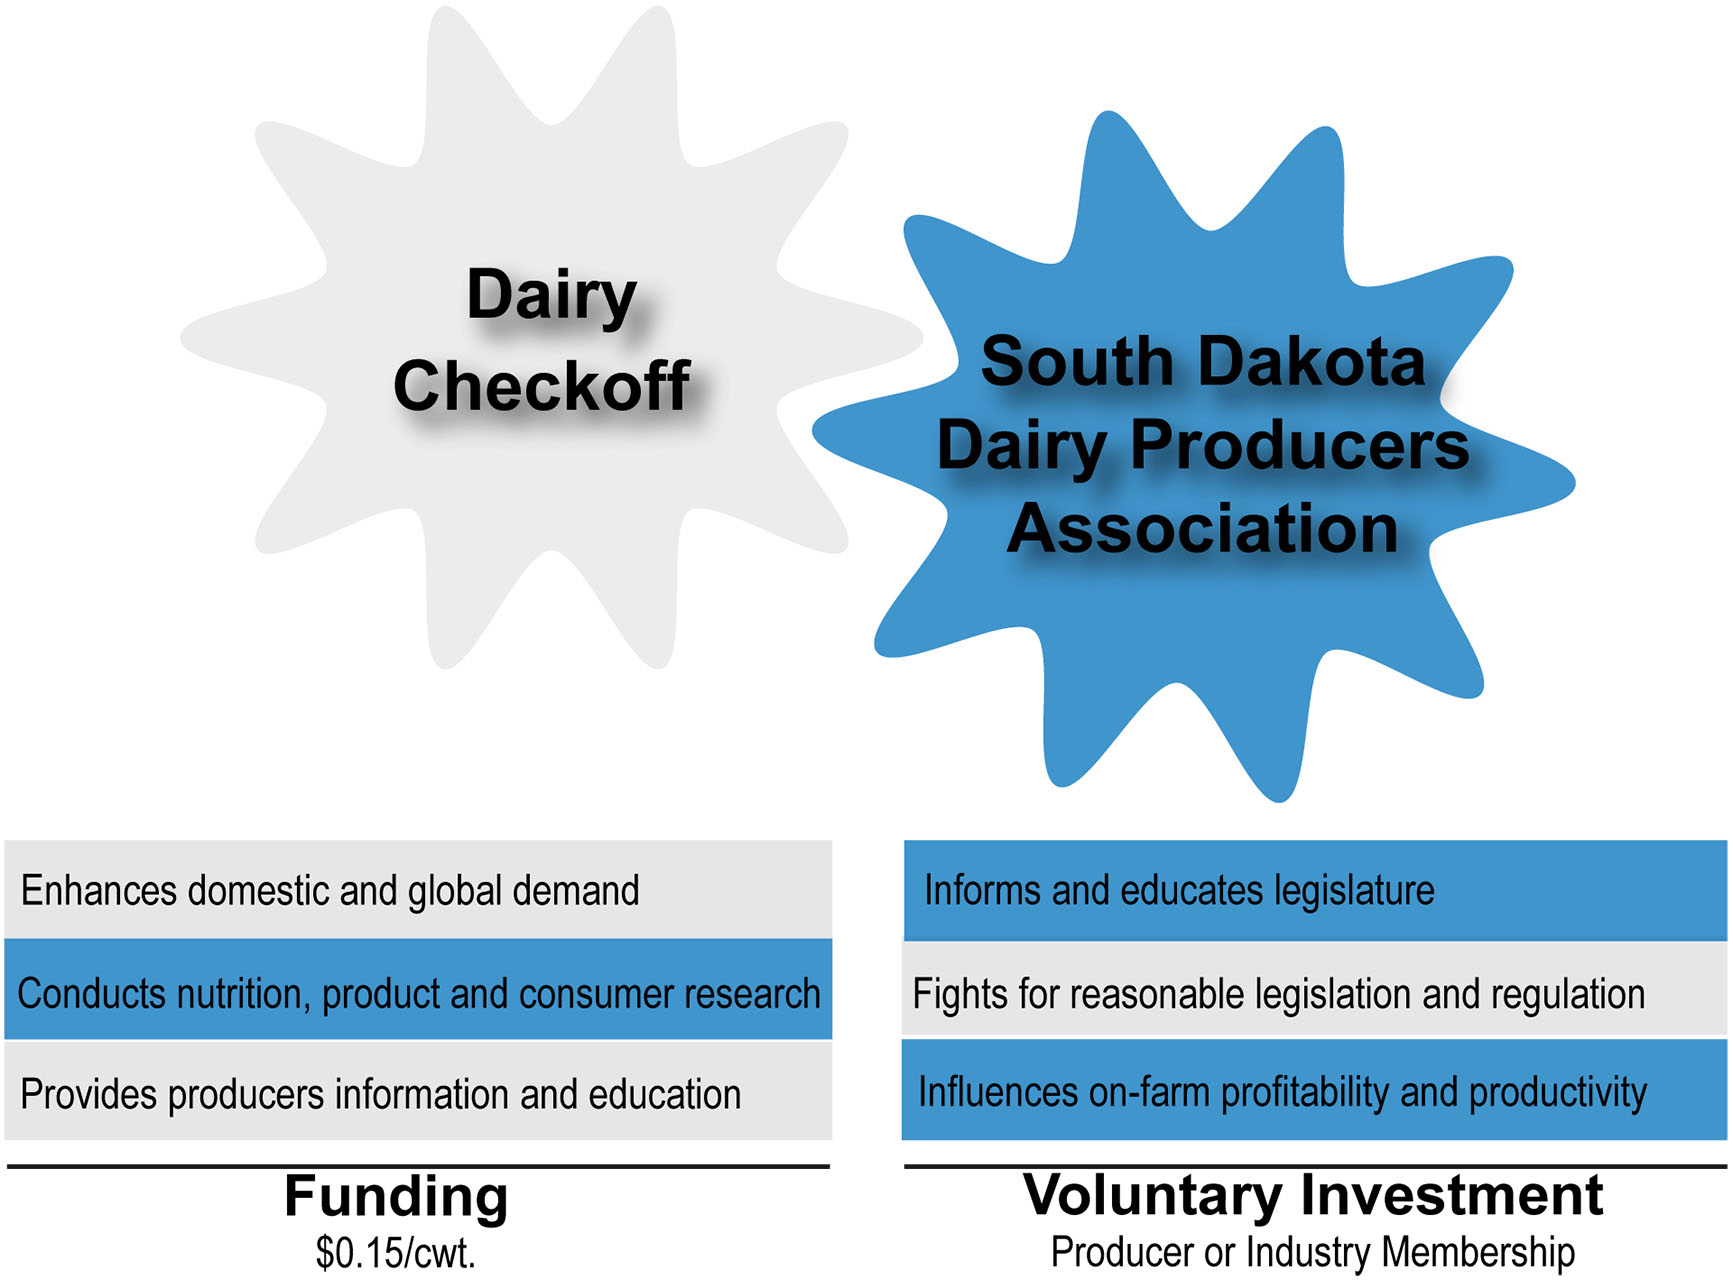 Checkoff Comparison-SDDP